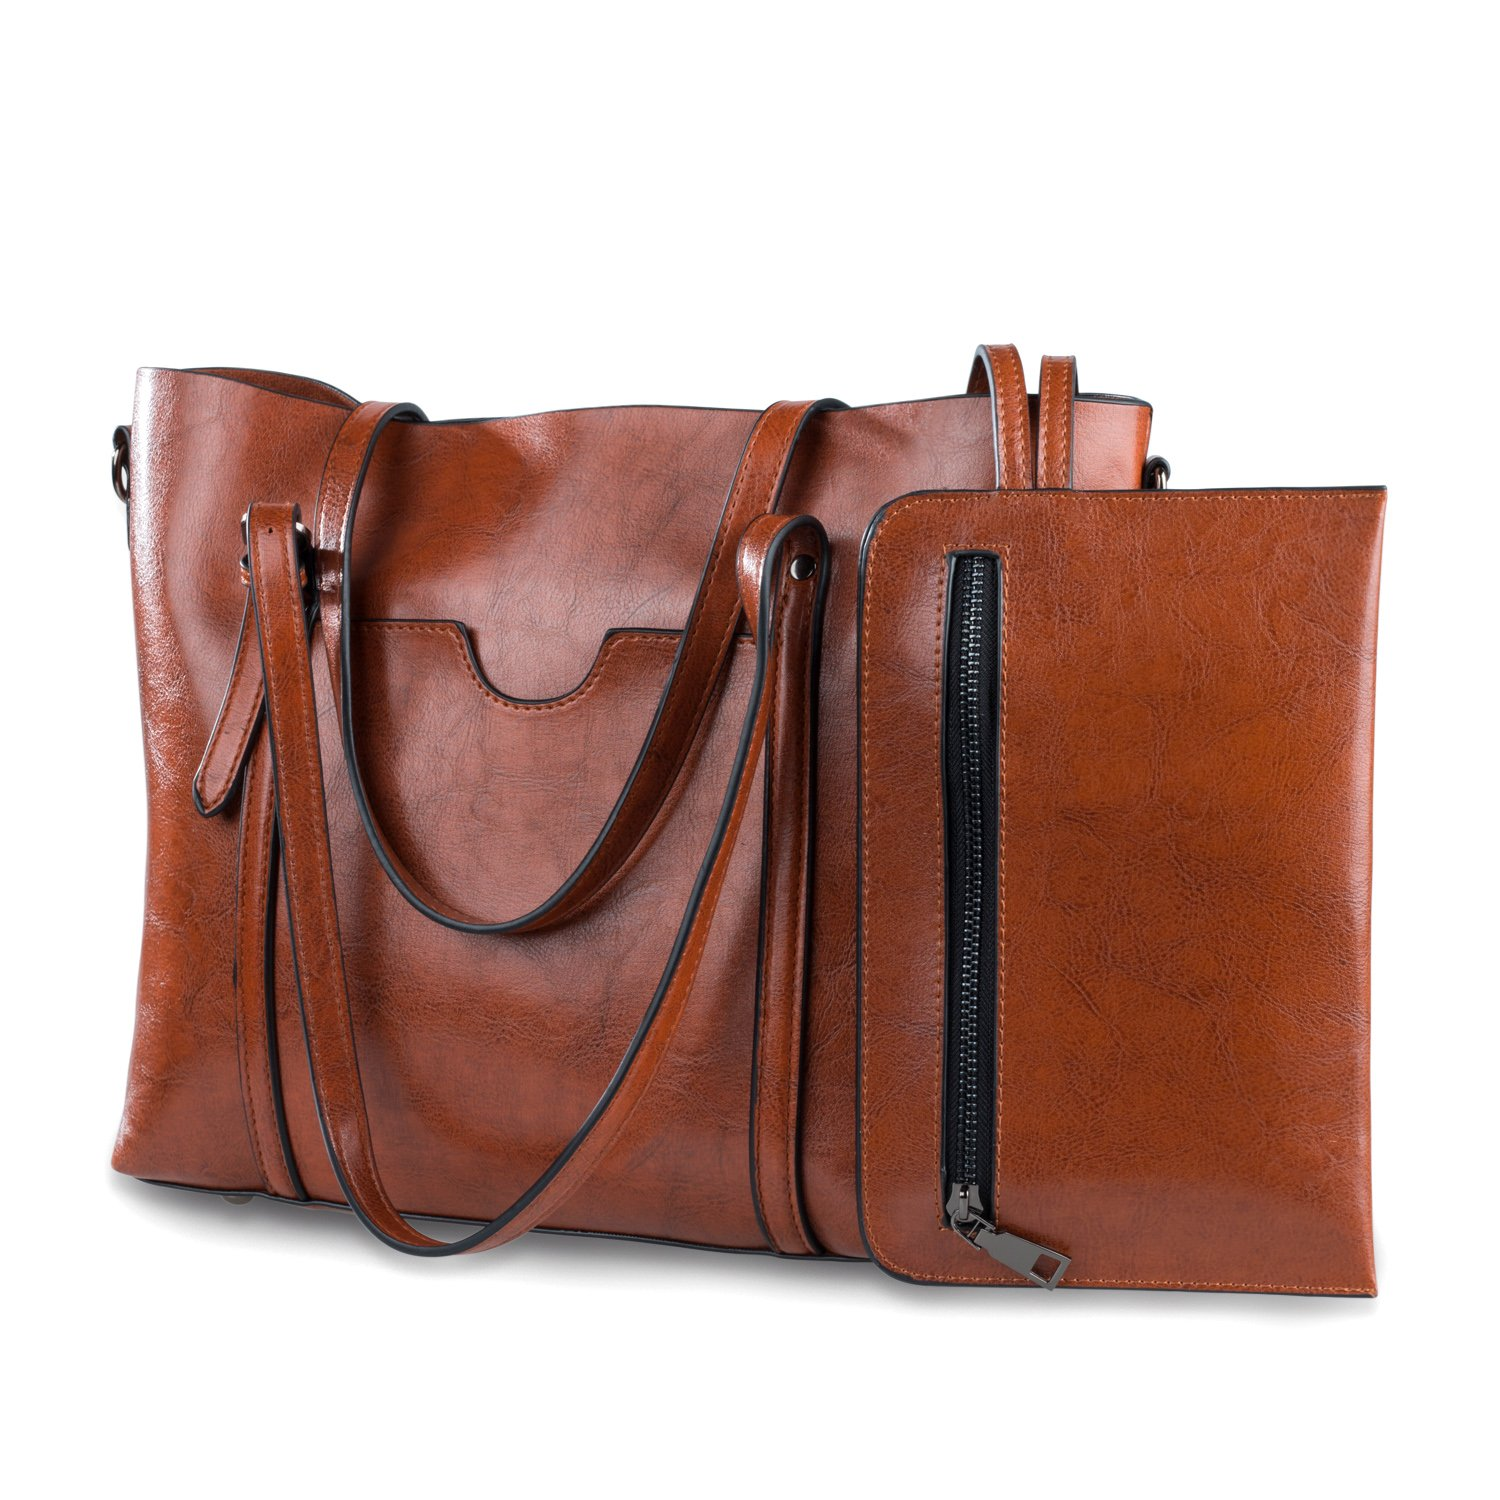 Women Bag Casual Vintage Shoulder Bag Handbags Cross Body Bag Large Capacity Brown Bags Tote Purse